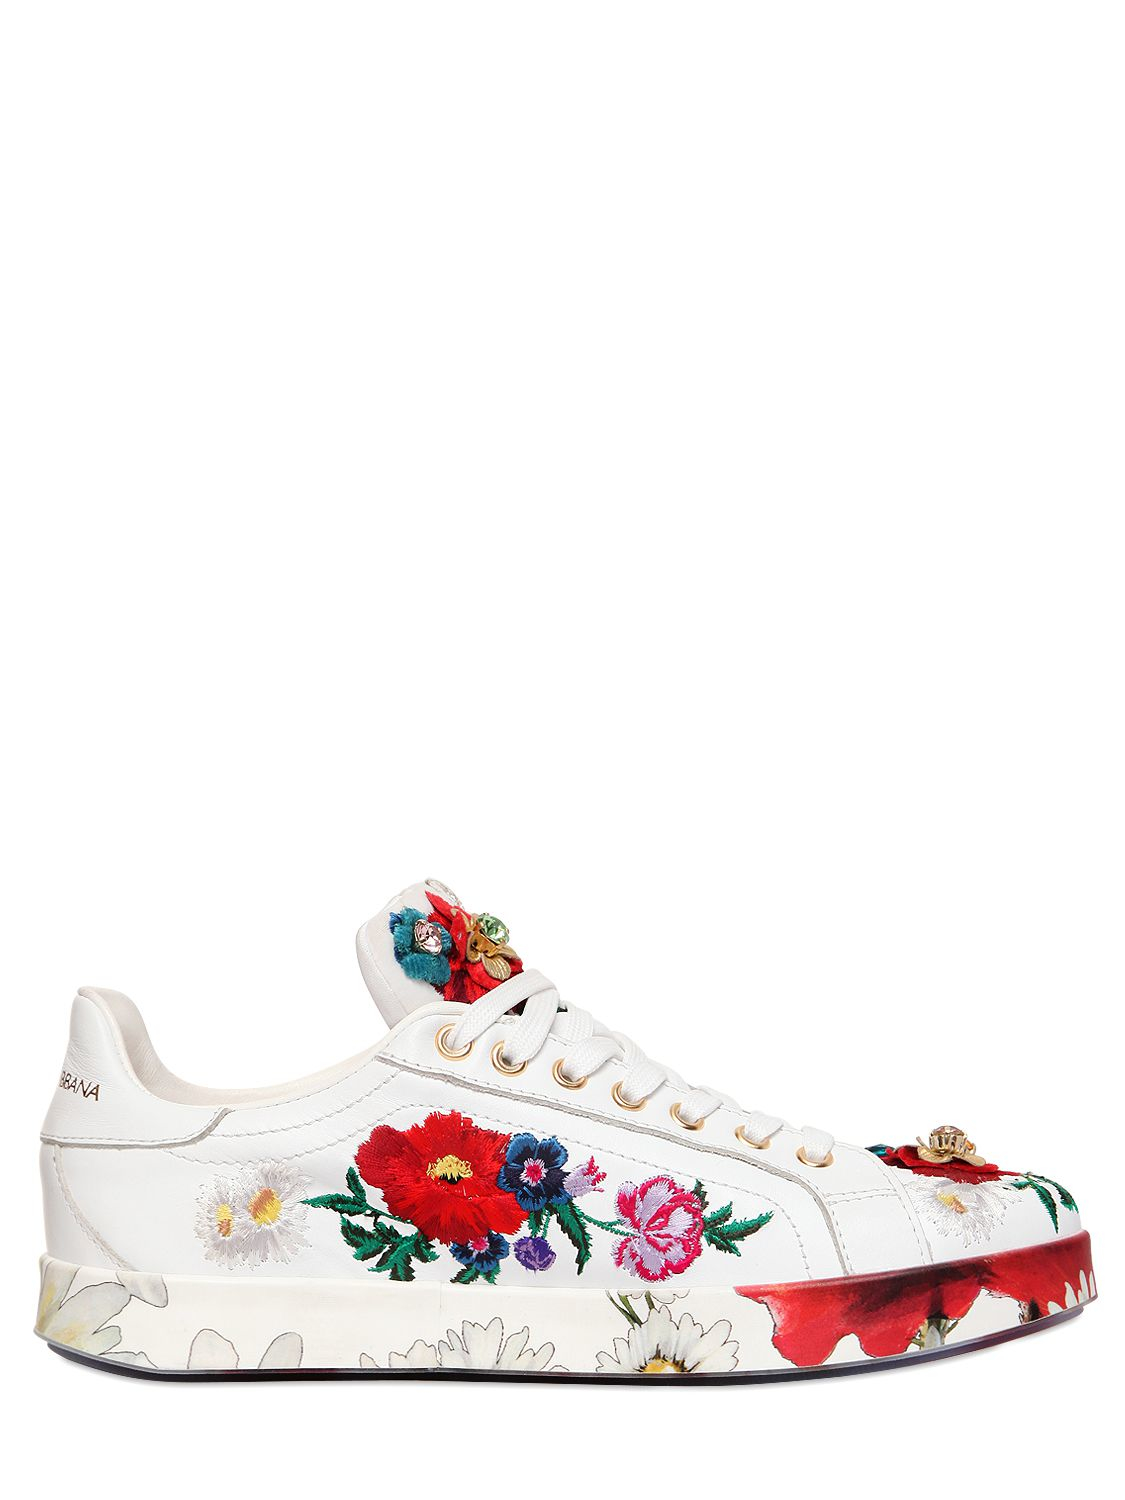 dolce gabbana 20mm floral embellished leather sneakers